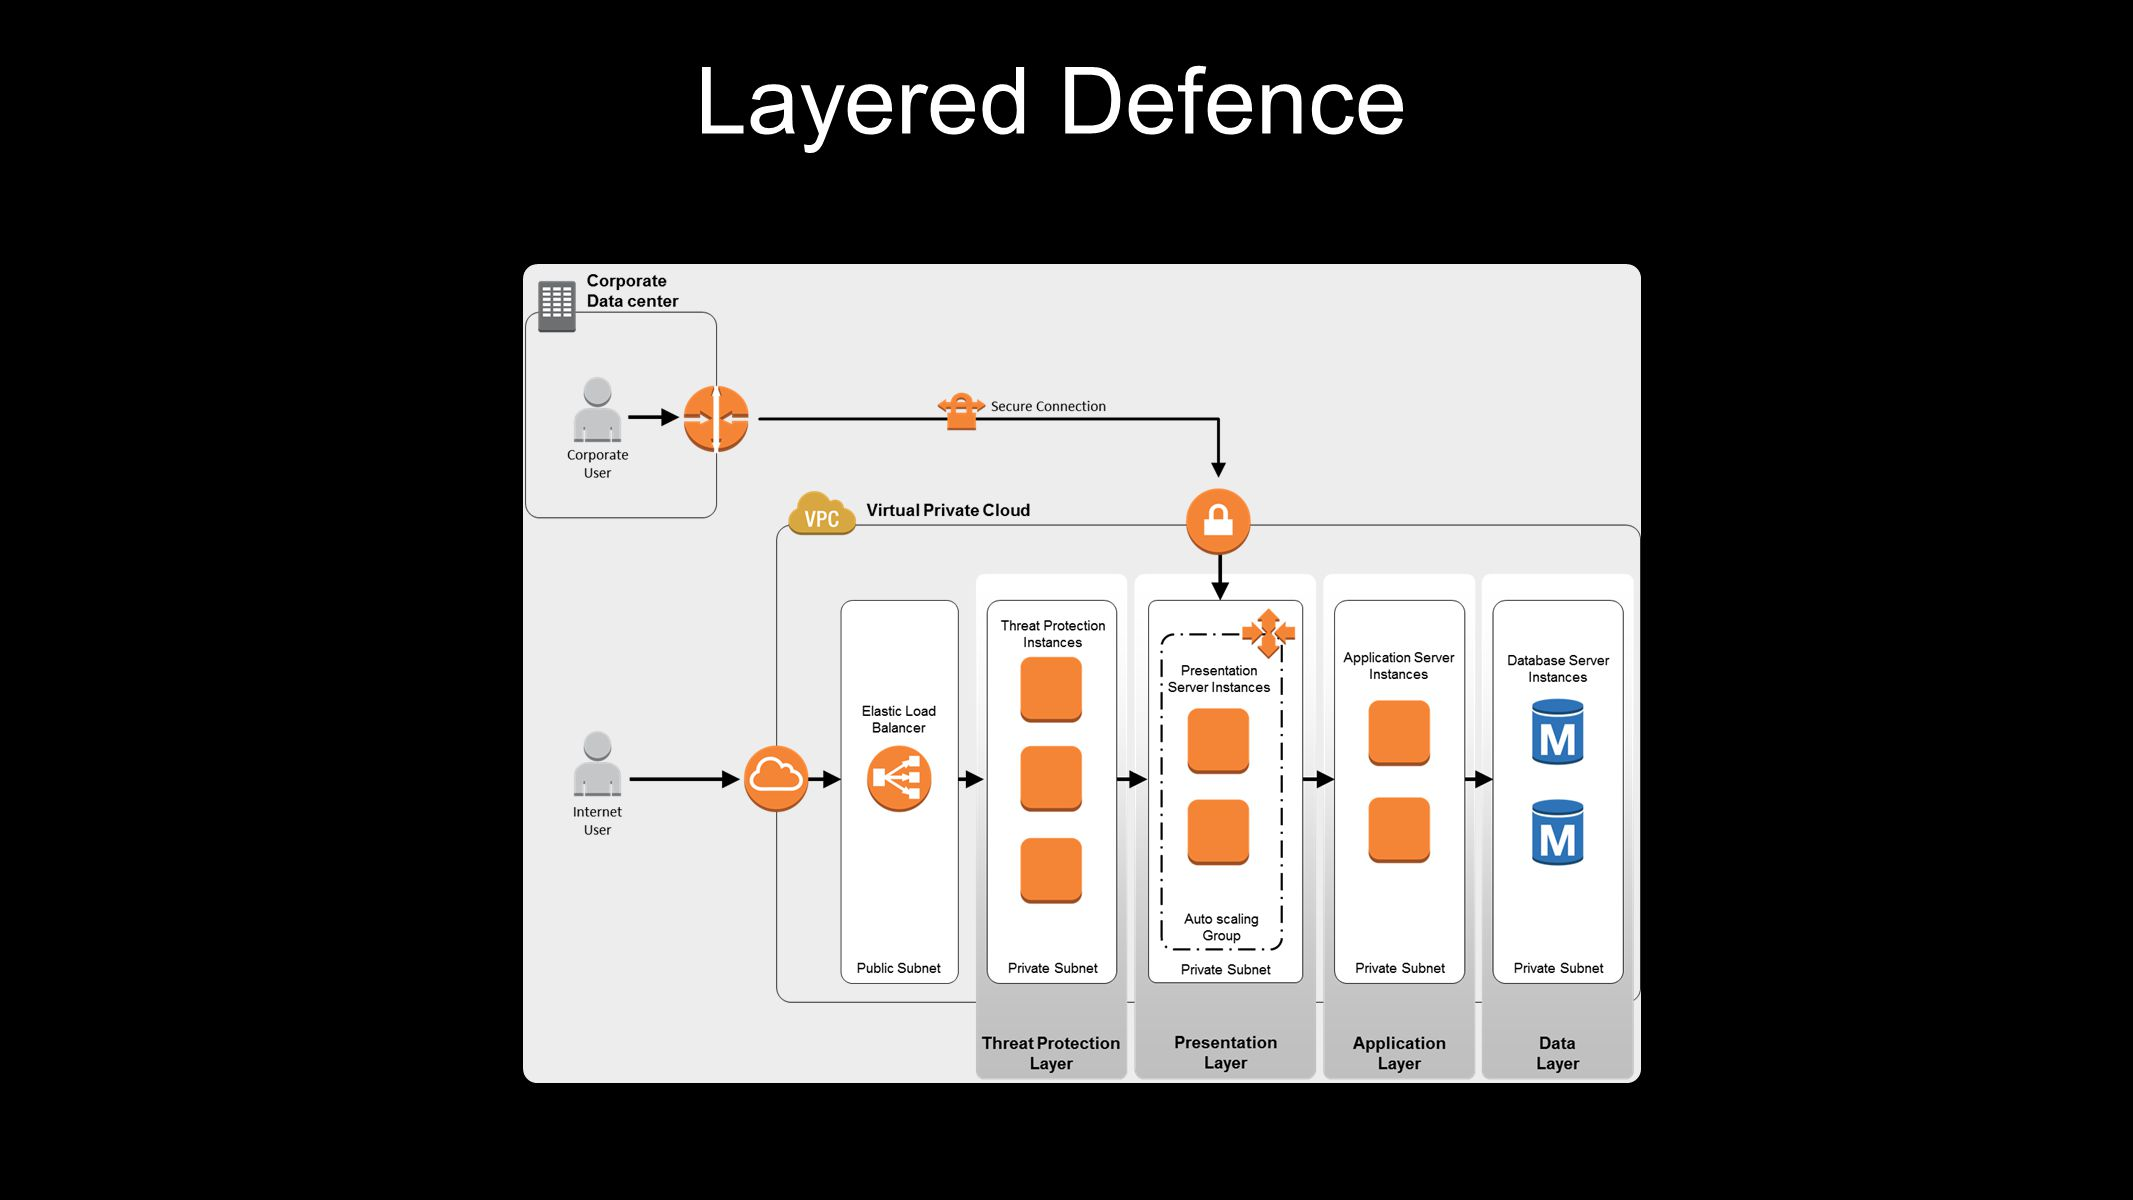 Layered Defence